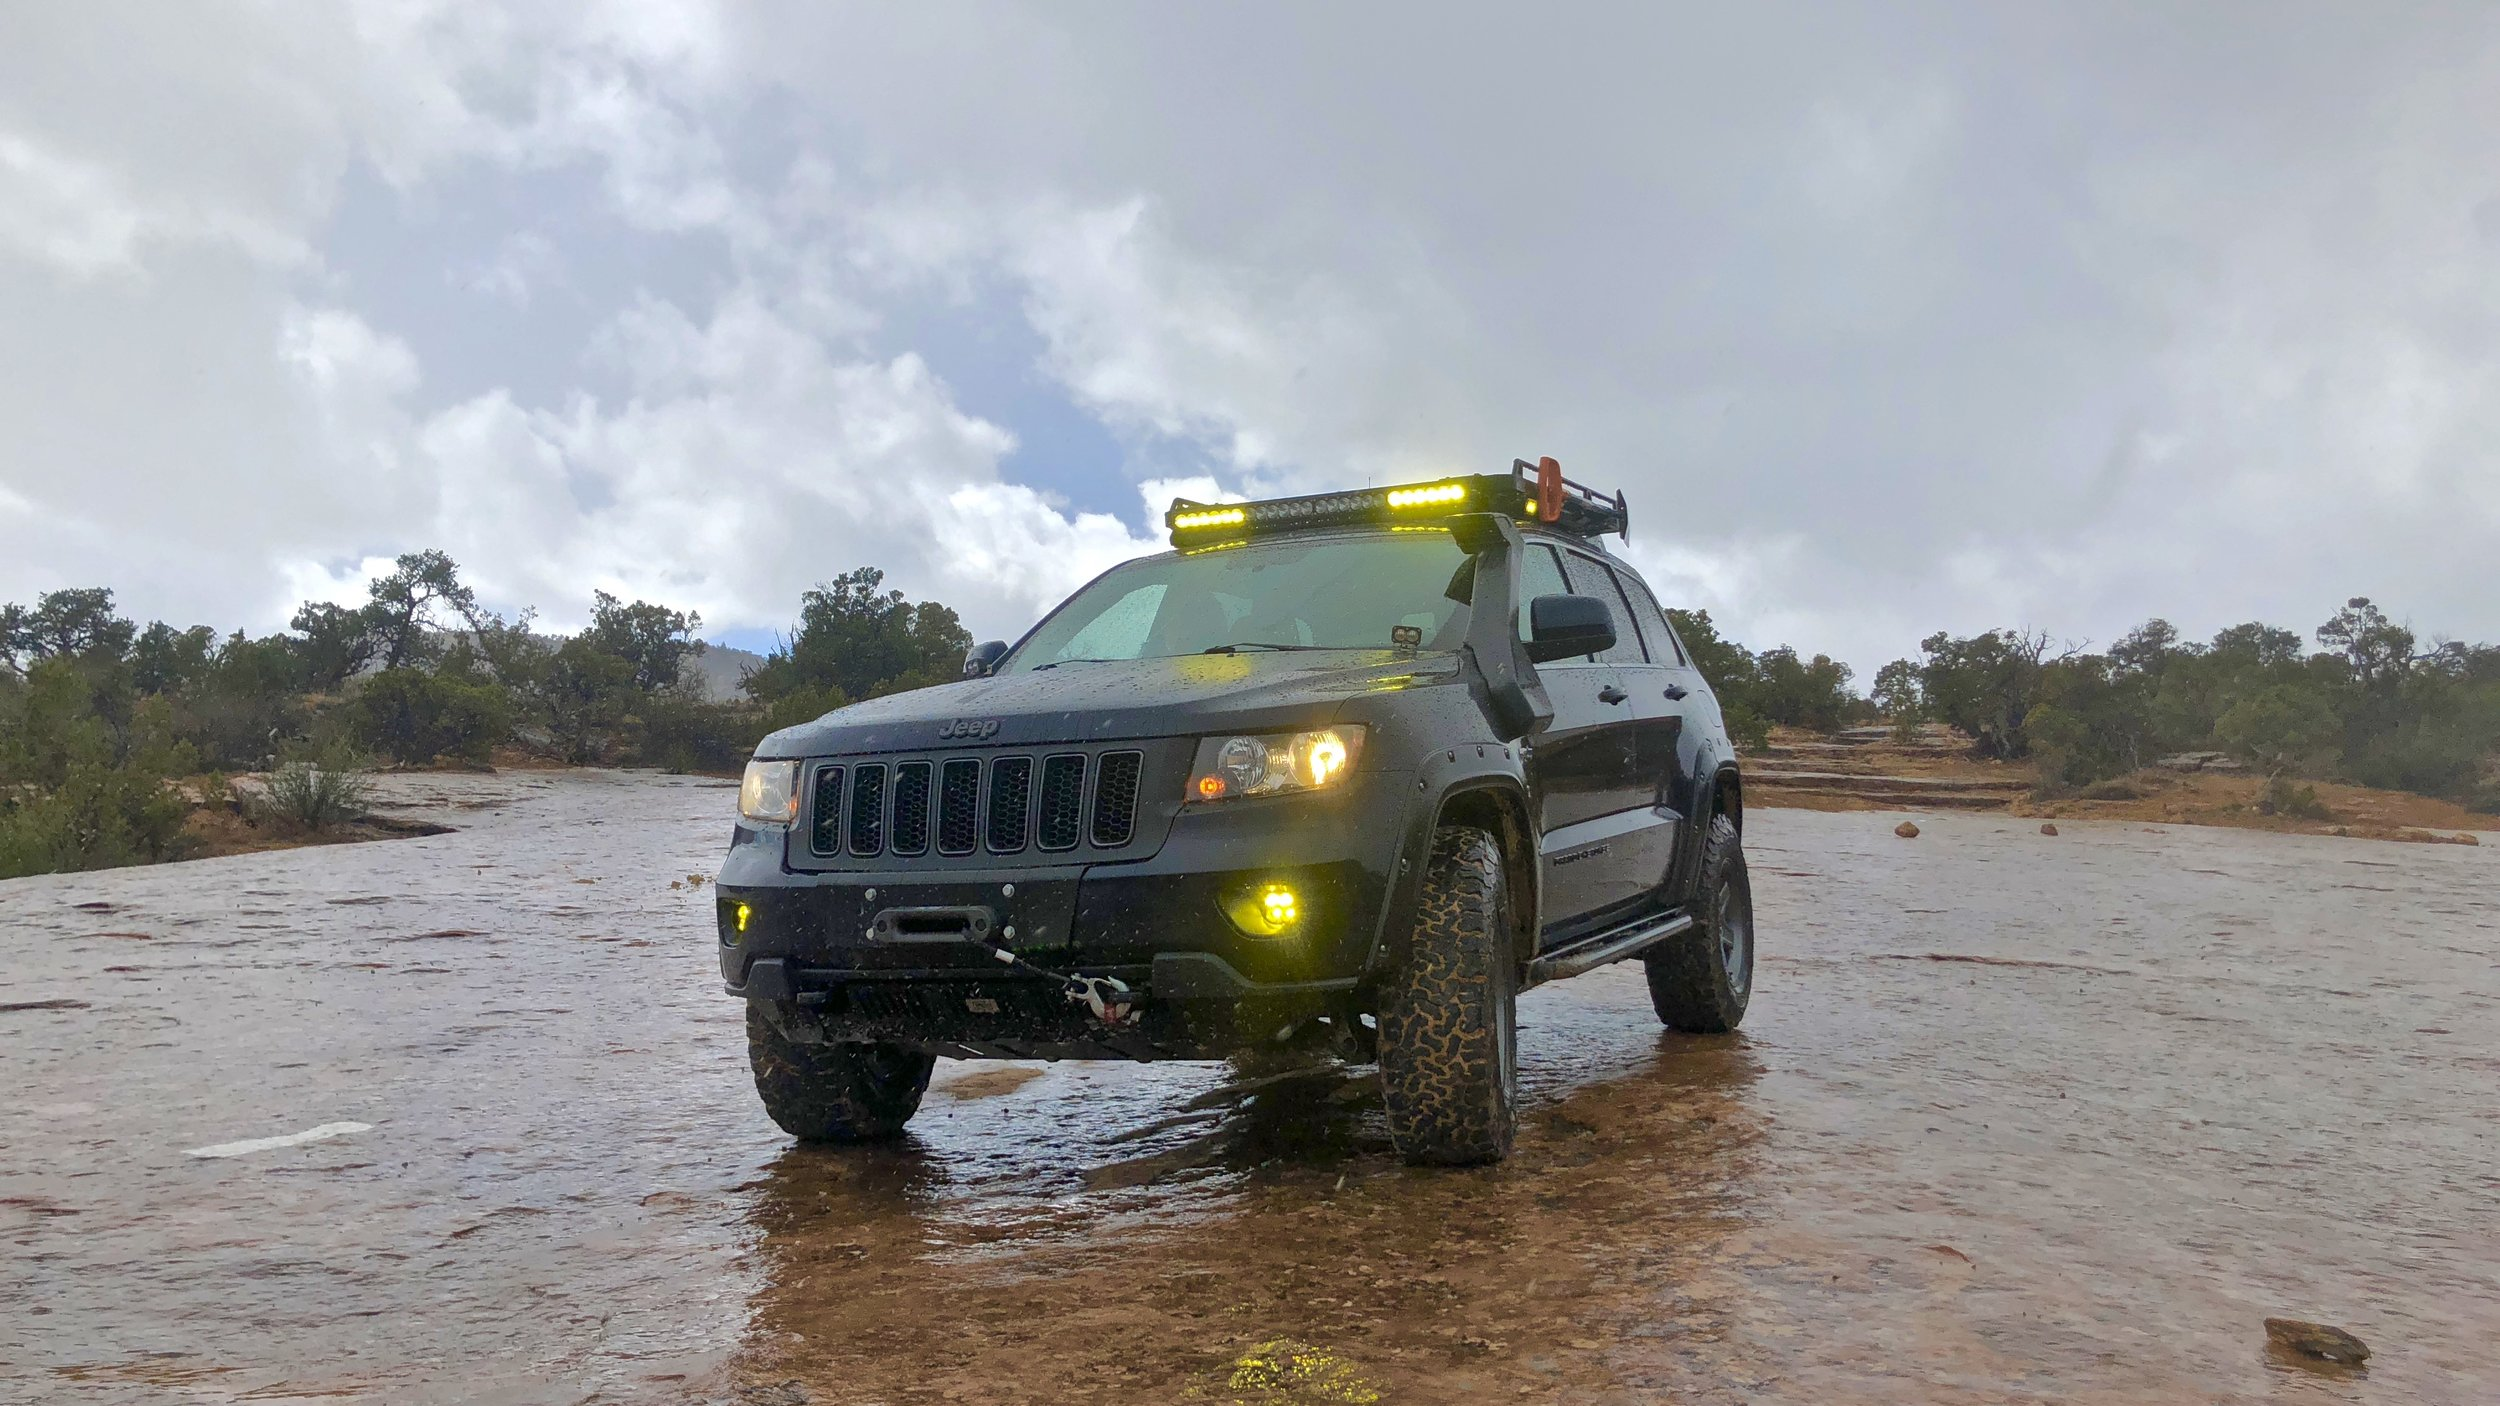 Backcountry travel means being prepared for changing conditions